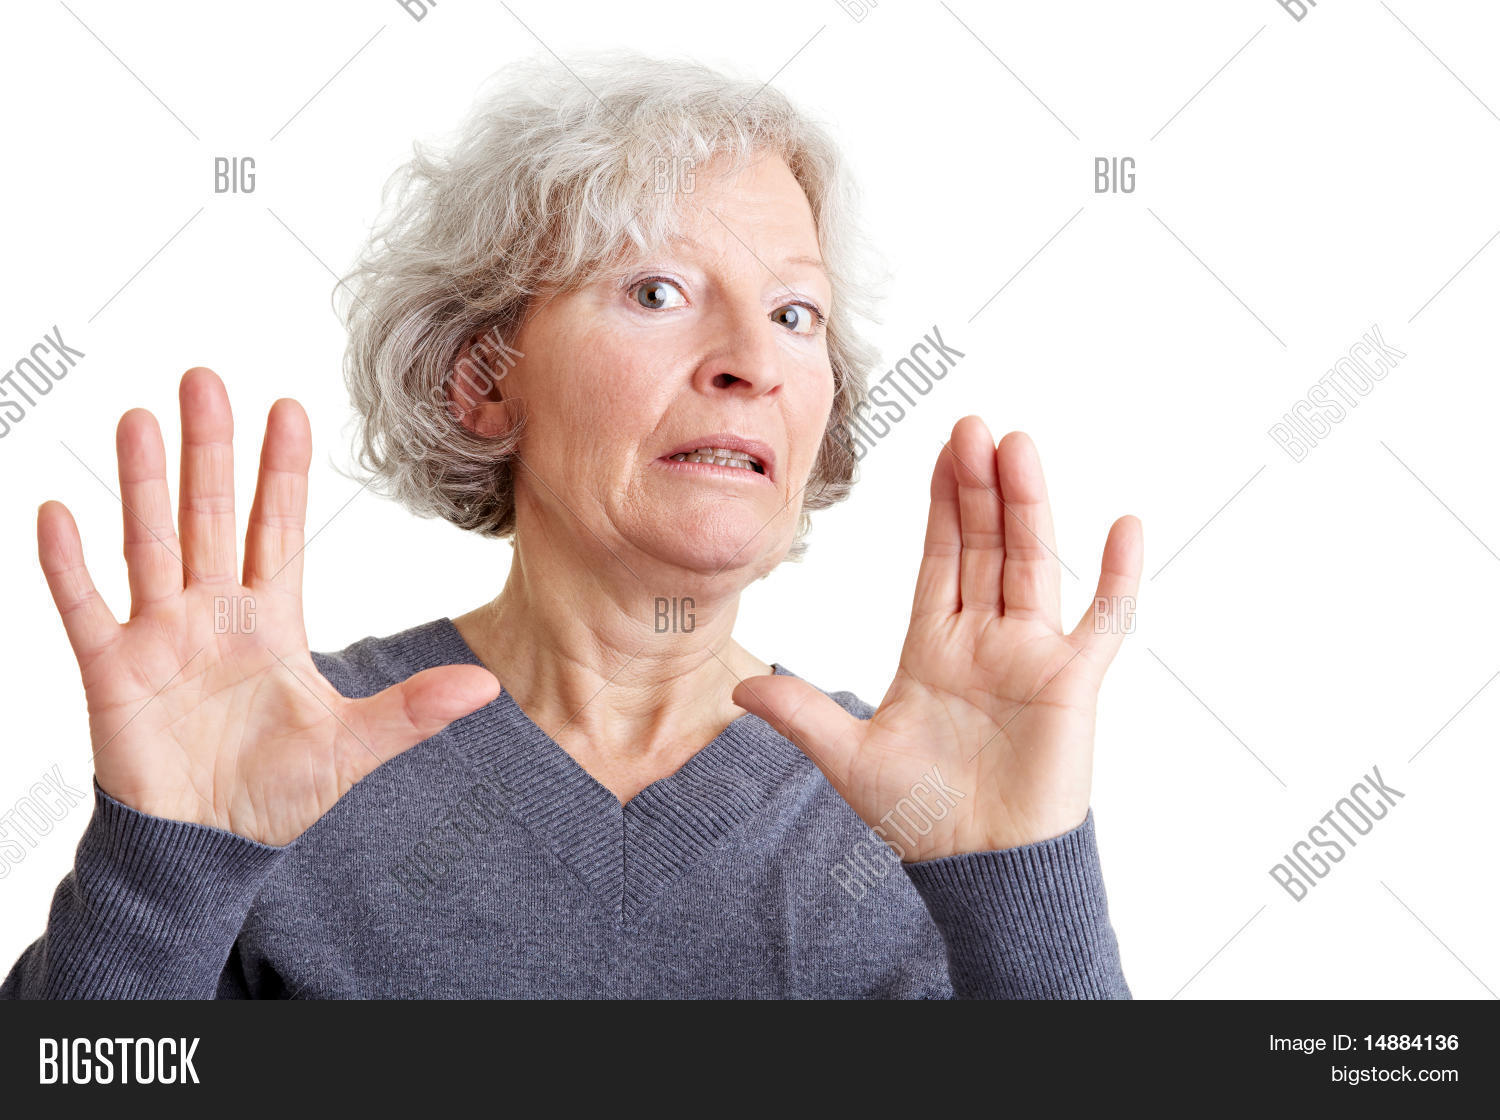 offended elderly w rejecting offer stock photo stock images offended elderly w rejecting offer